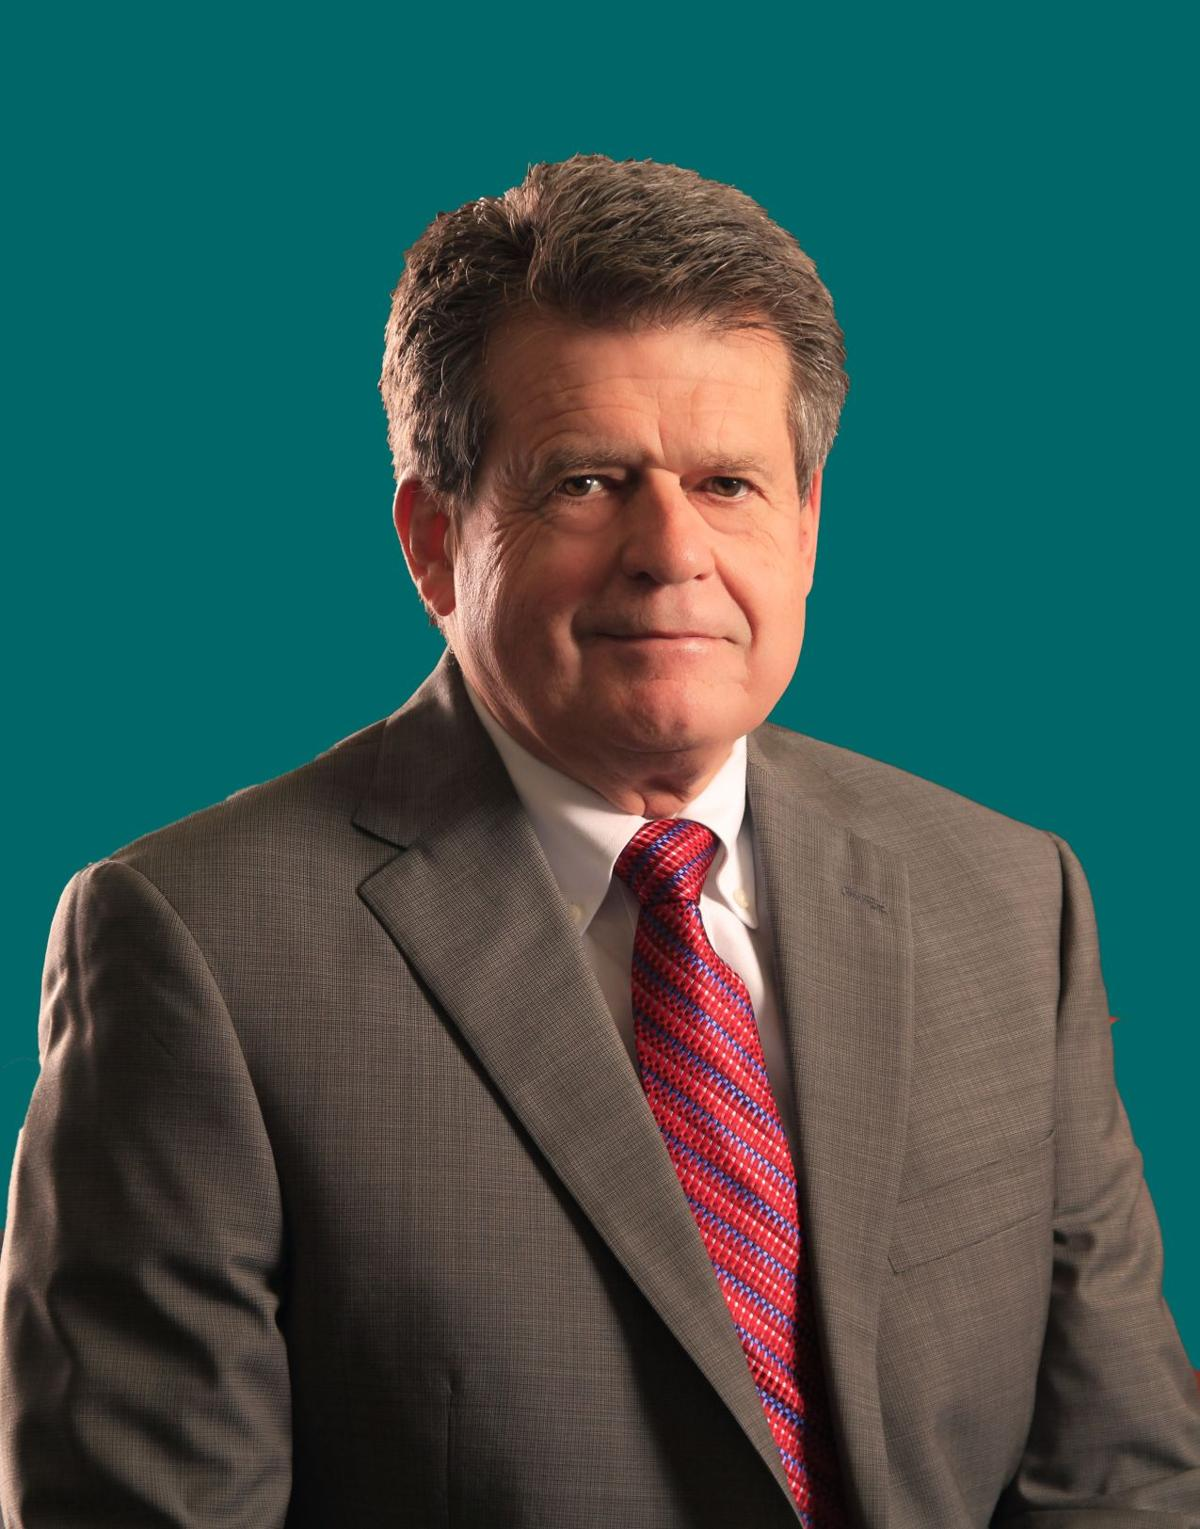 Gerald Parton, President and CEO of East Jefferson General Ho.1